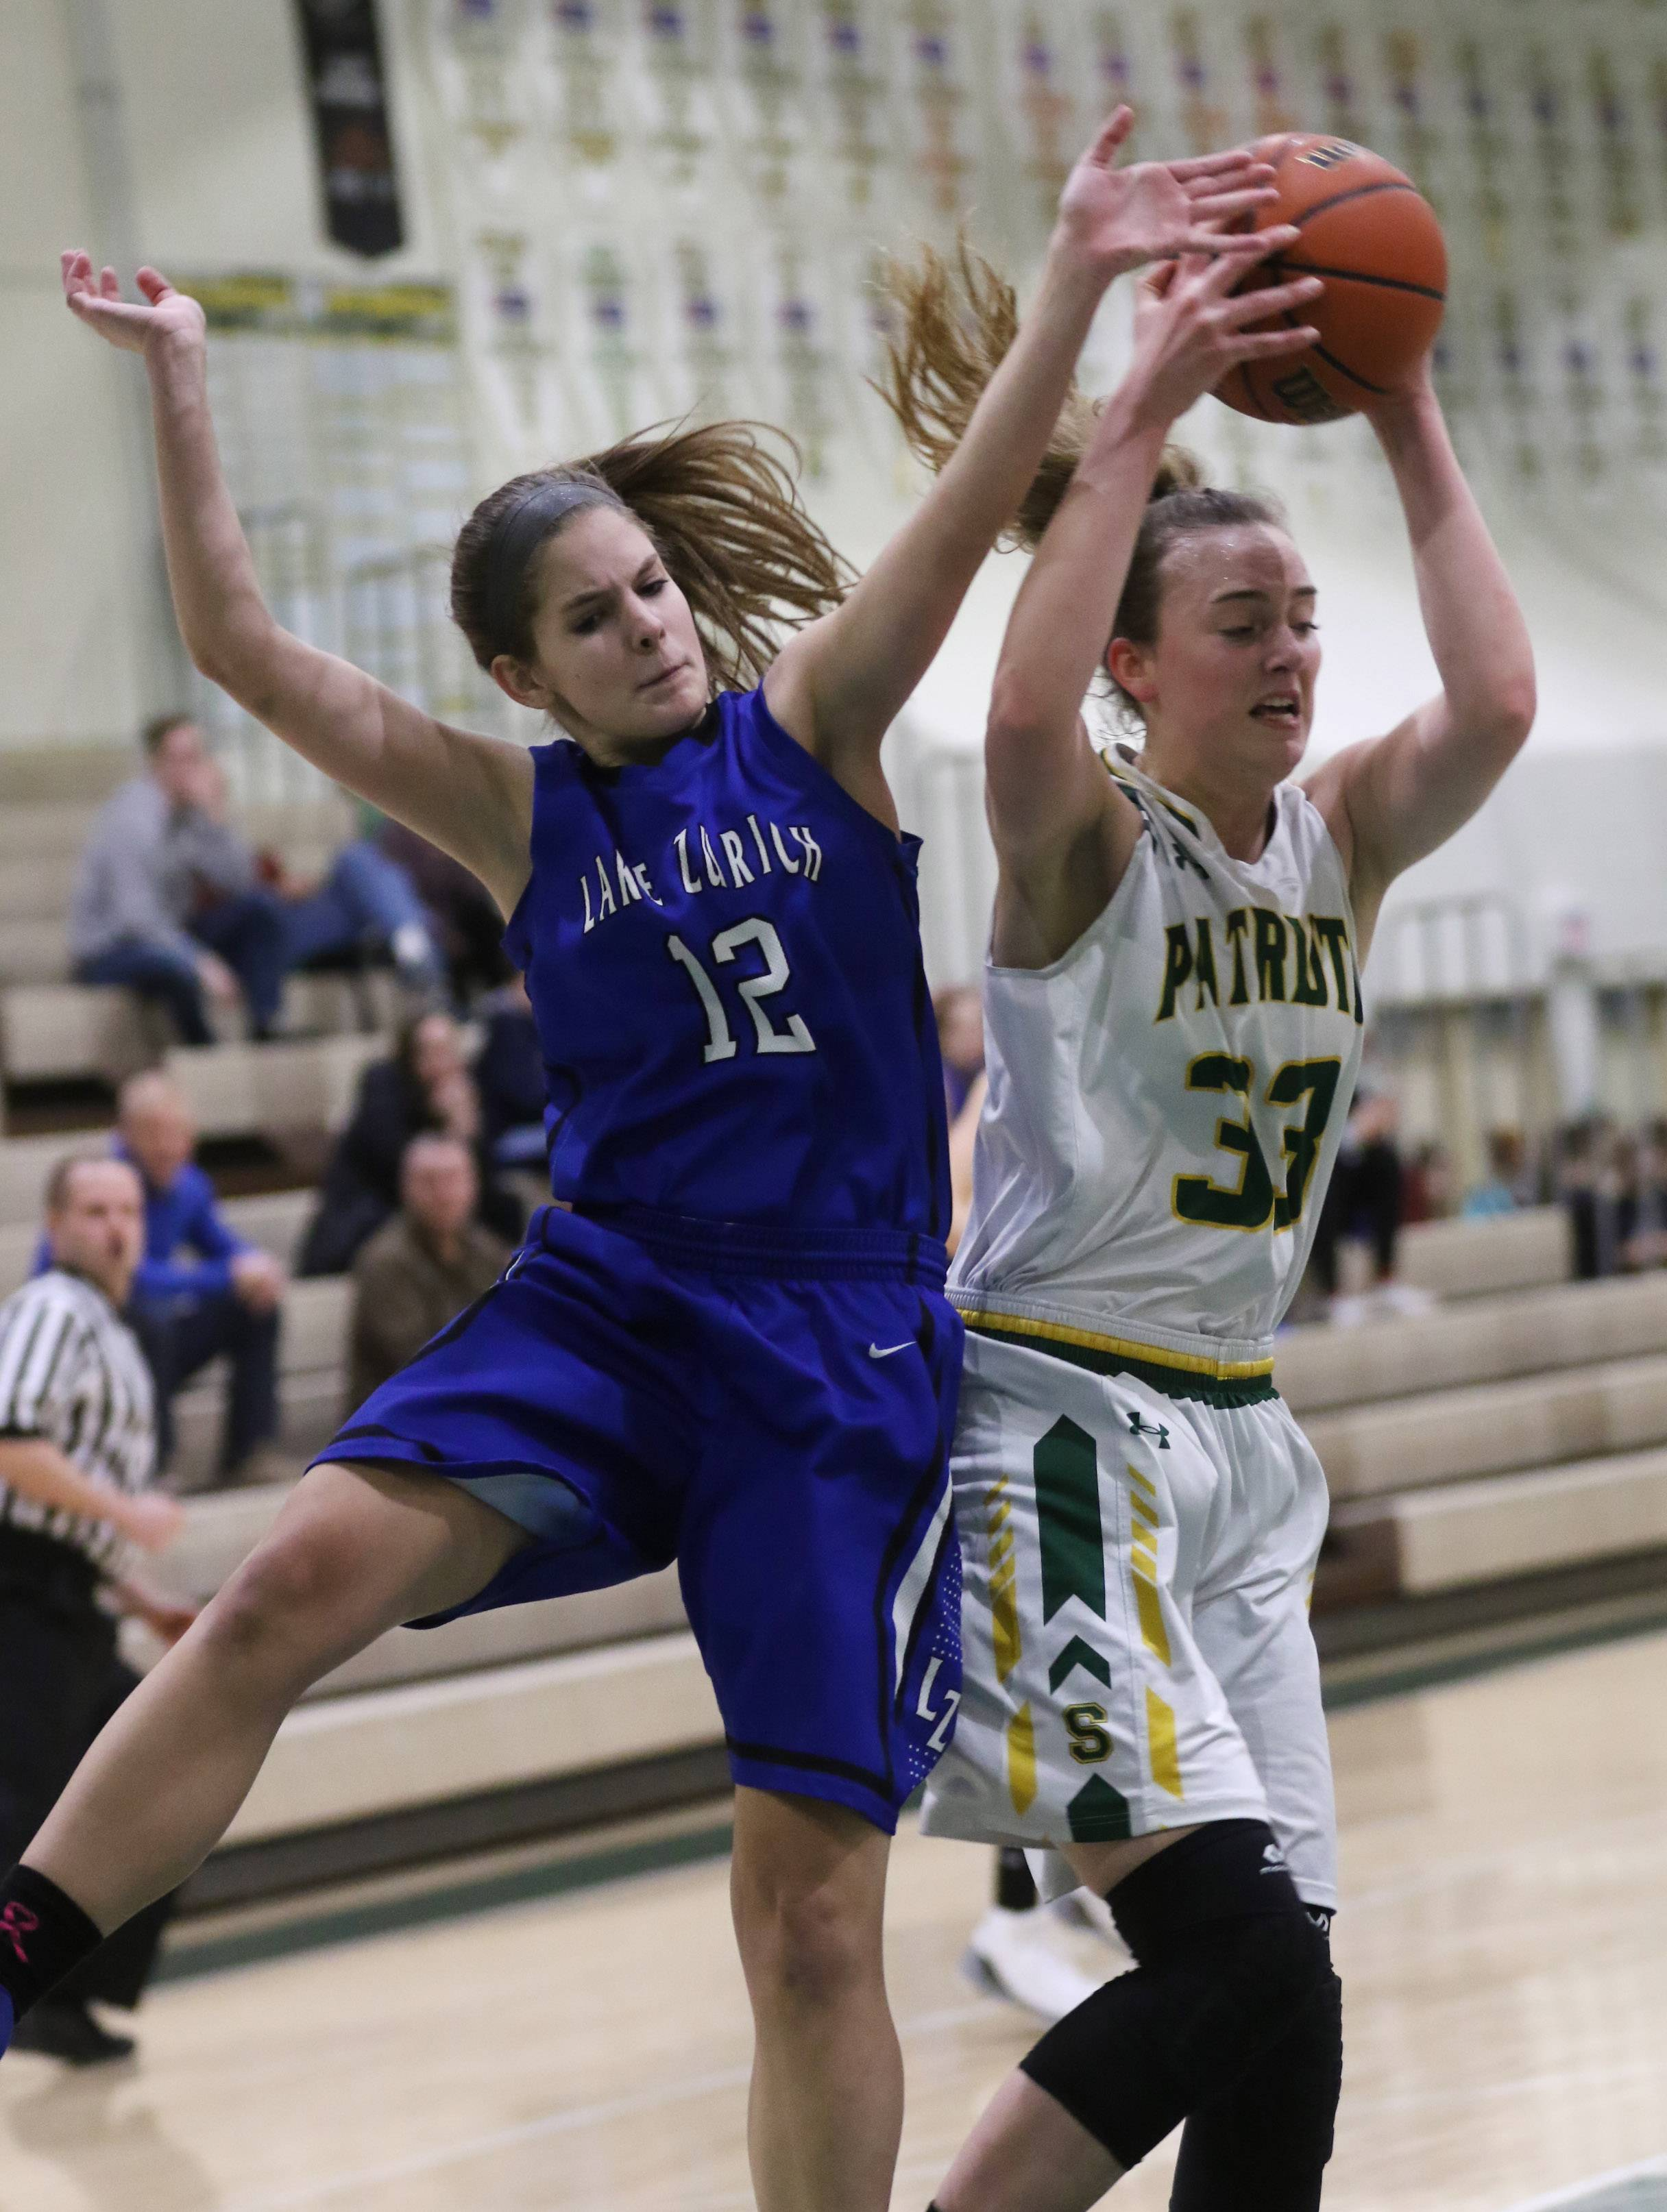 Stevenson forward Klaire Steffens rebounds the ball and takes it away from Lake Zurich guard Brigid Ferguson on Thursday at Stevenson.